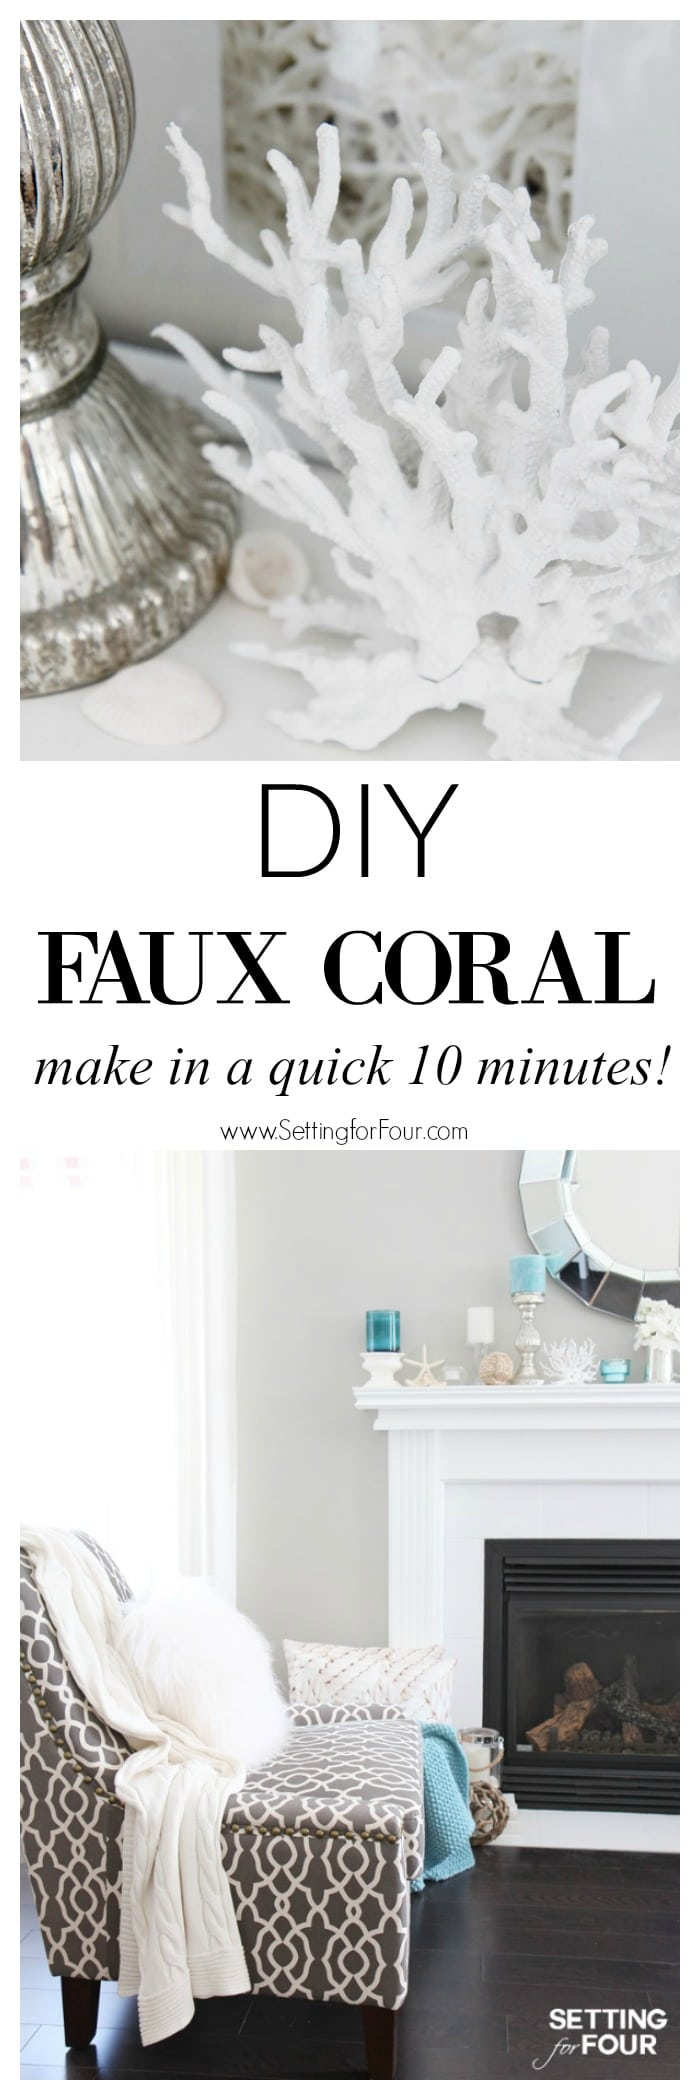 easy-diy-faux-coral-idea